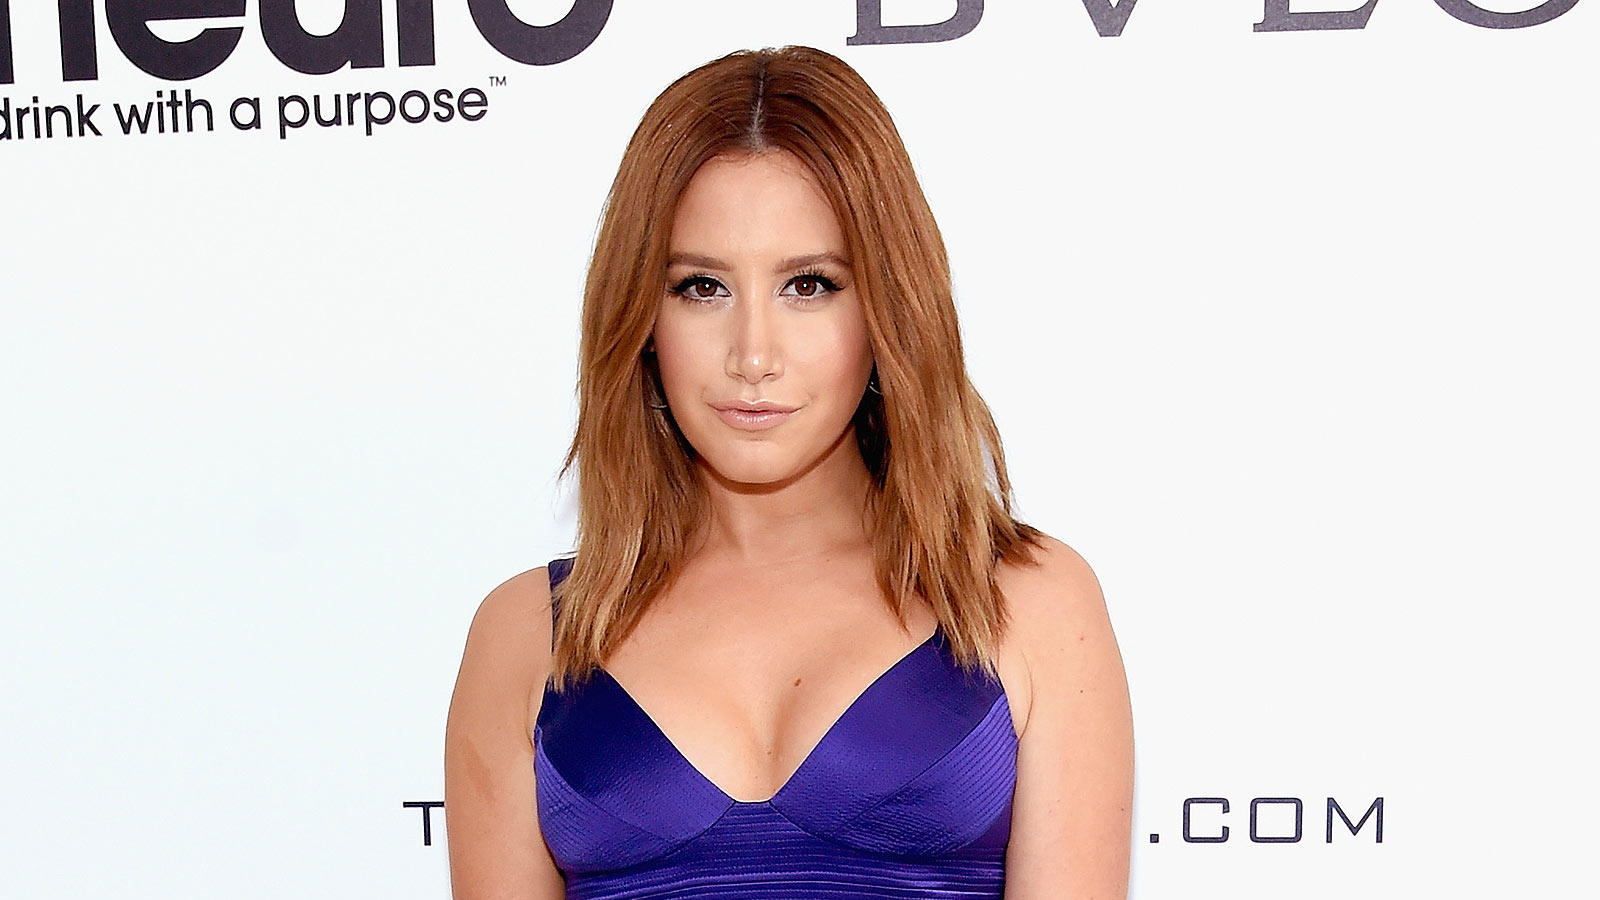 Ashley Tisdale Responds to Body Shamers: 'I'm Not Pregnant, I'm Just Happy'